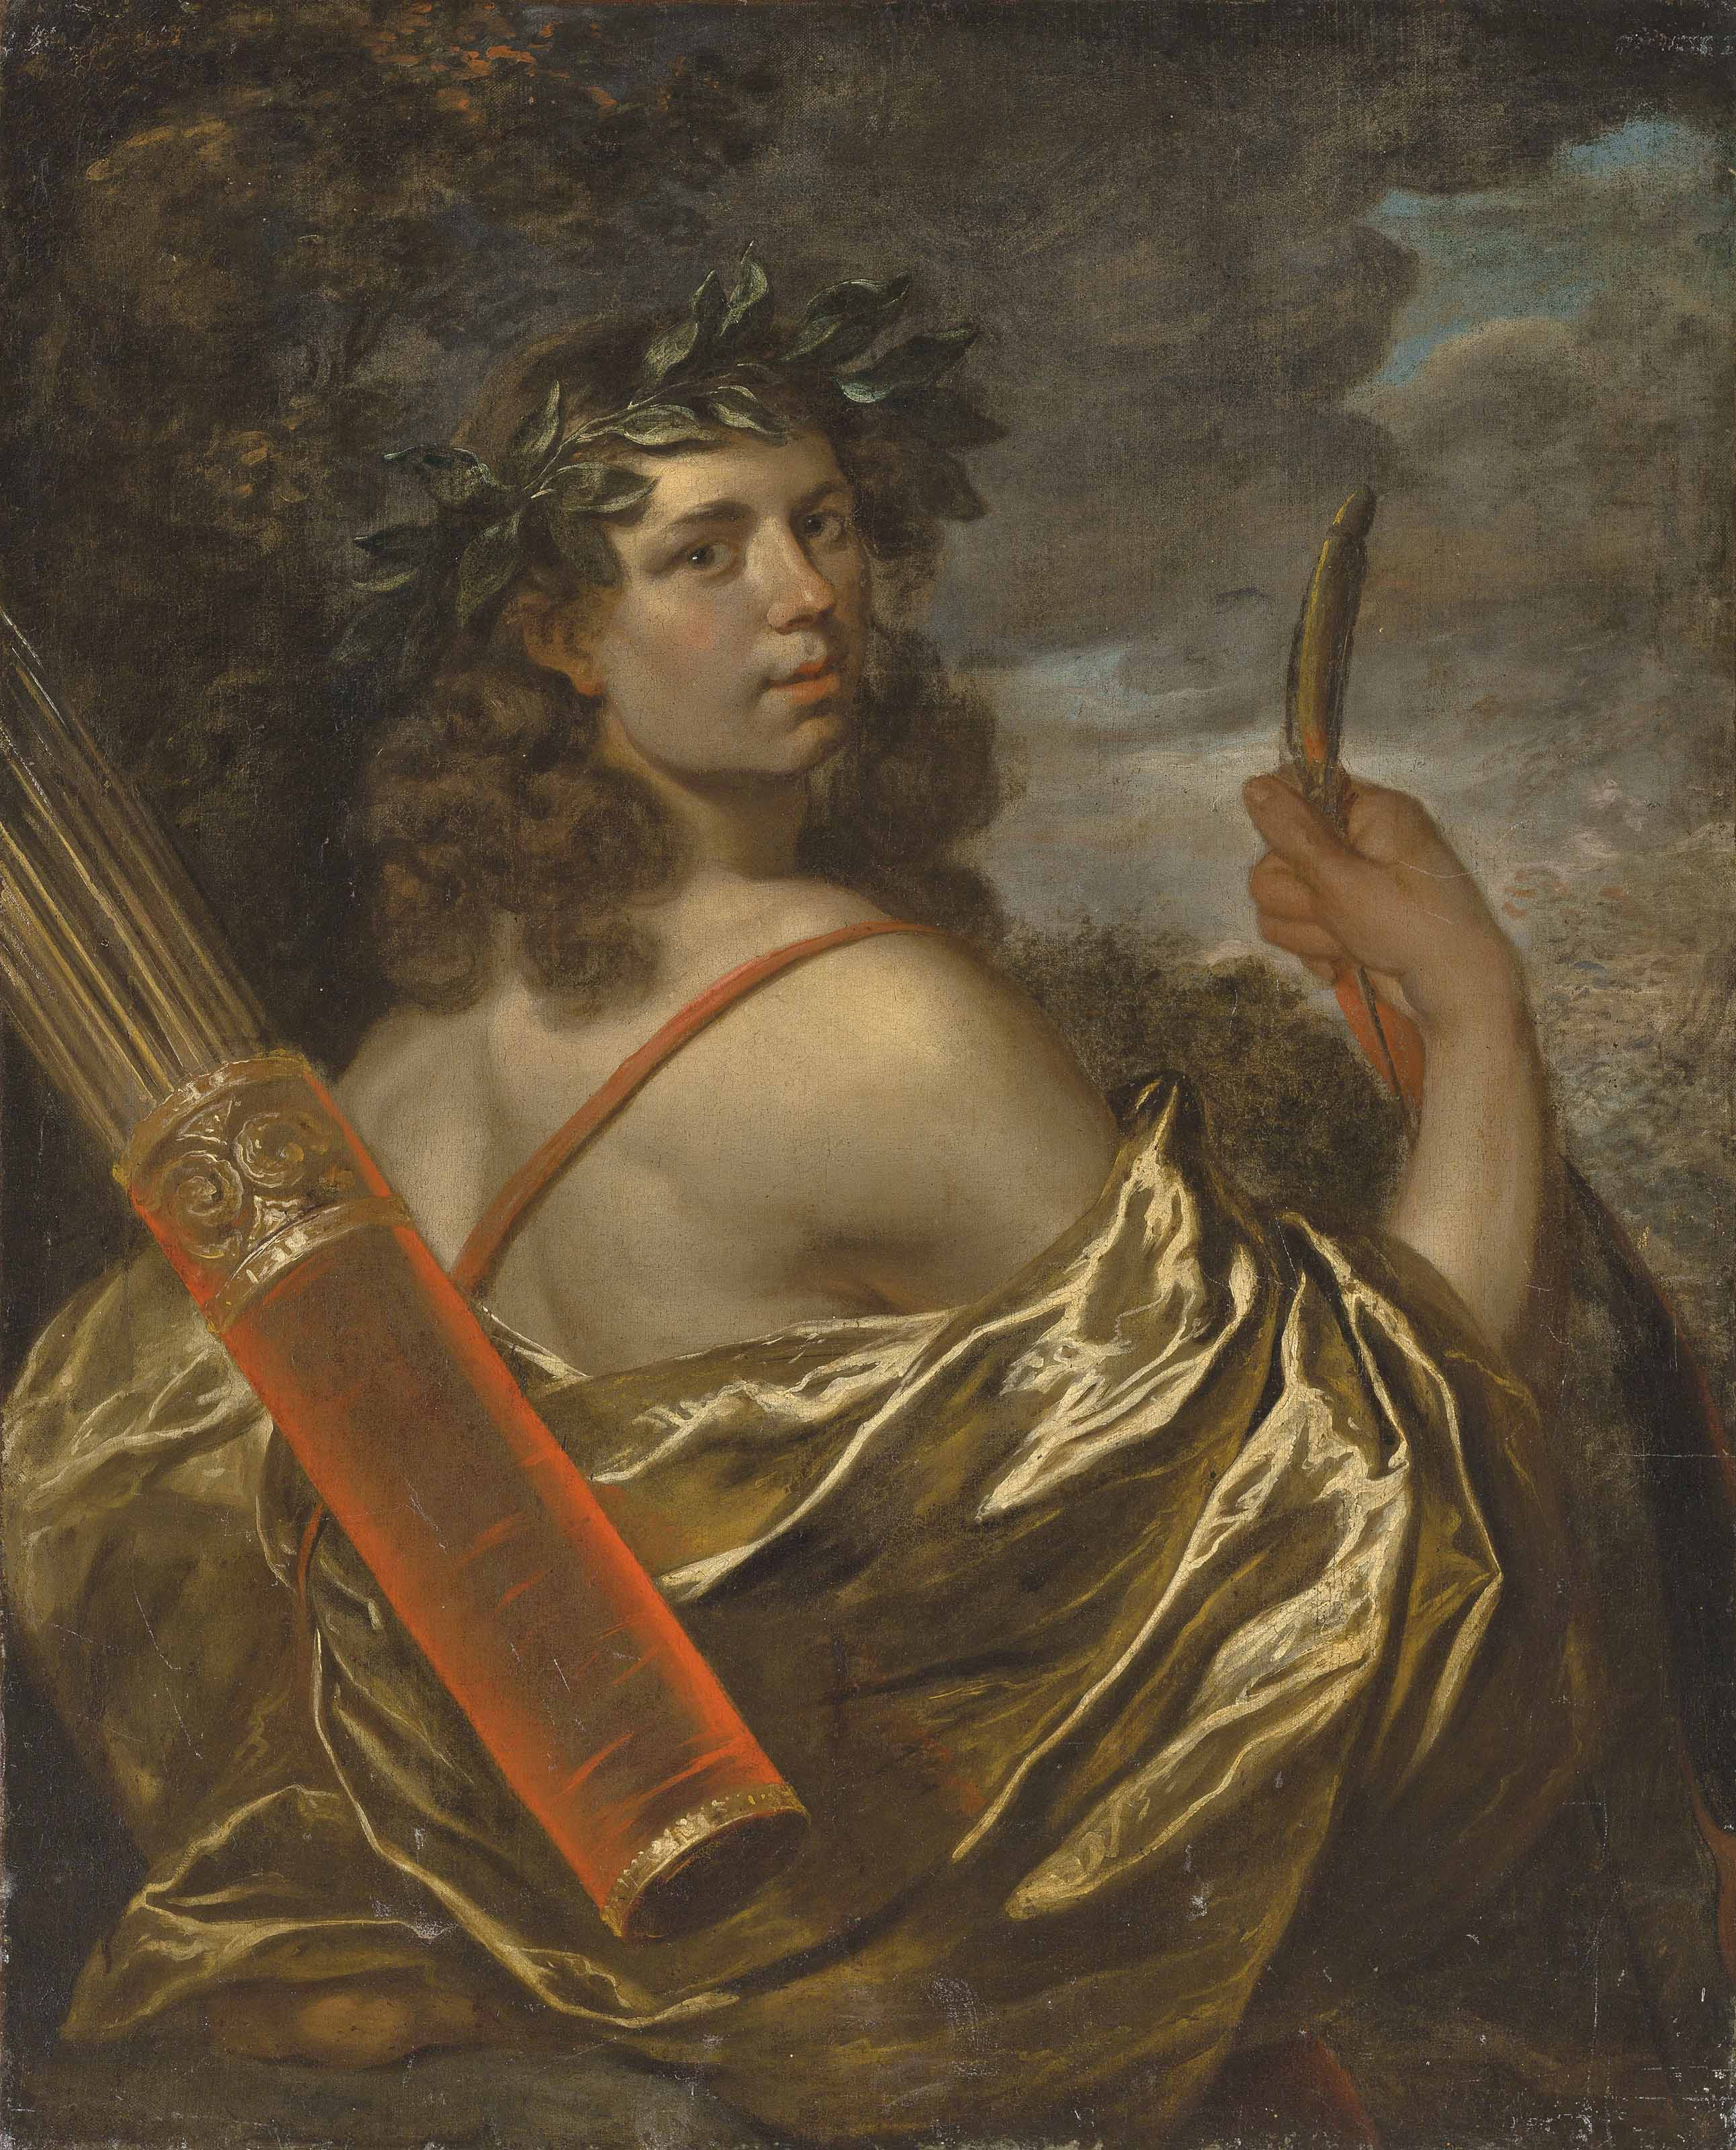 Portrait of a gentleman in the guise of Apollo, half-length